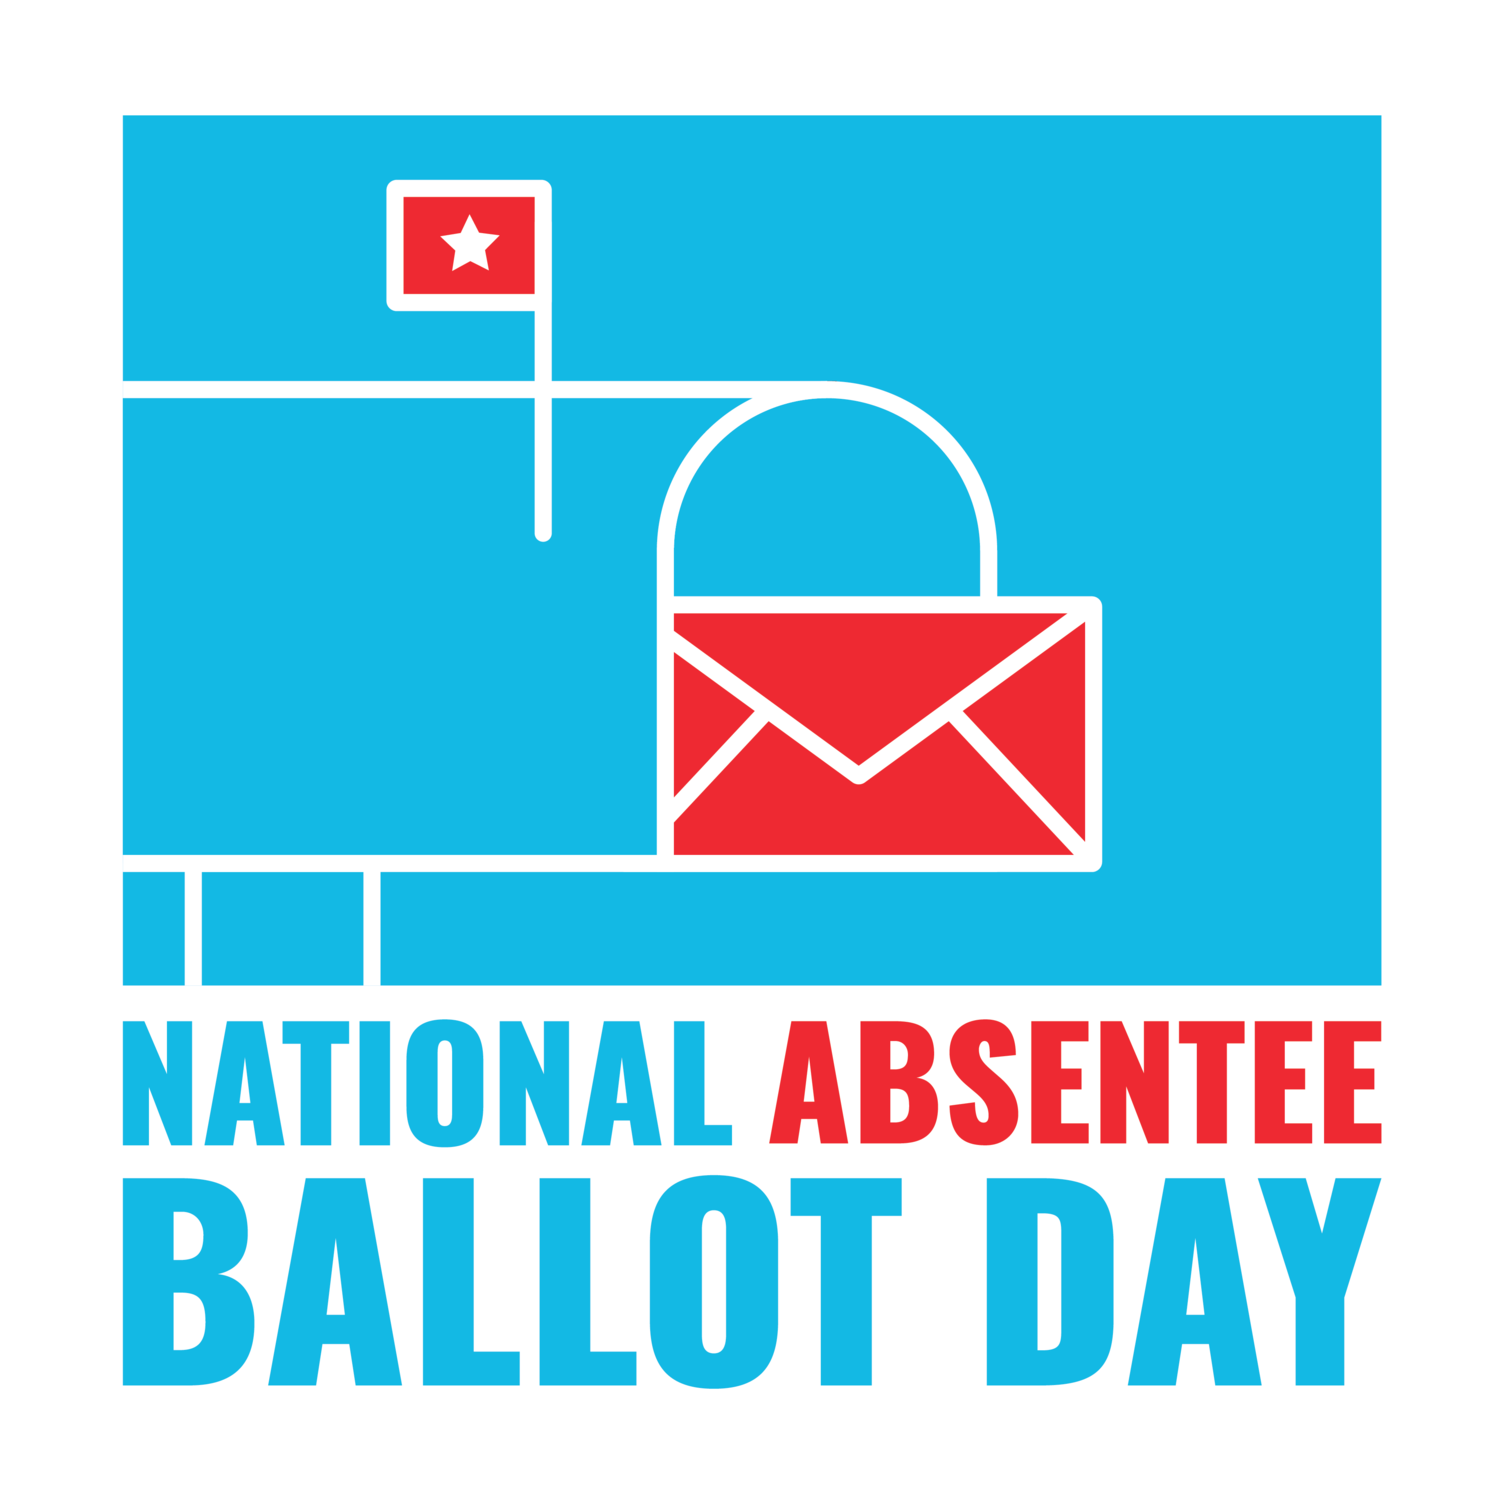 National Absentee Ballot Day